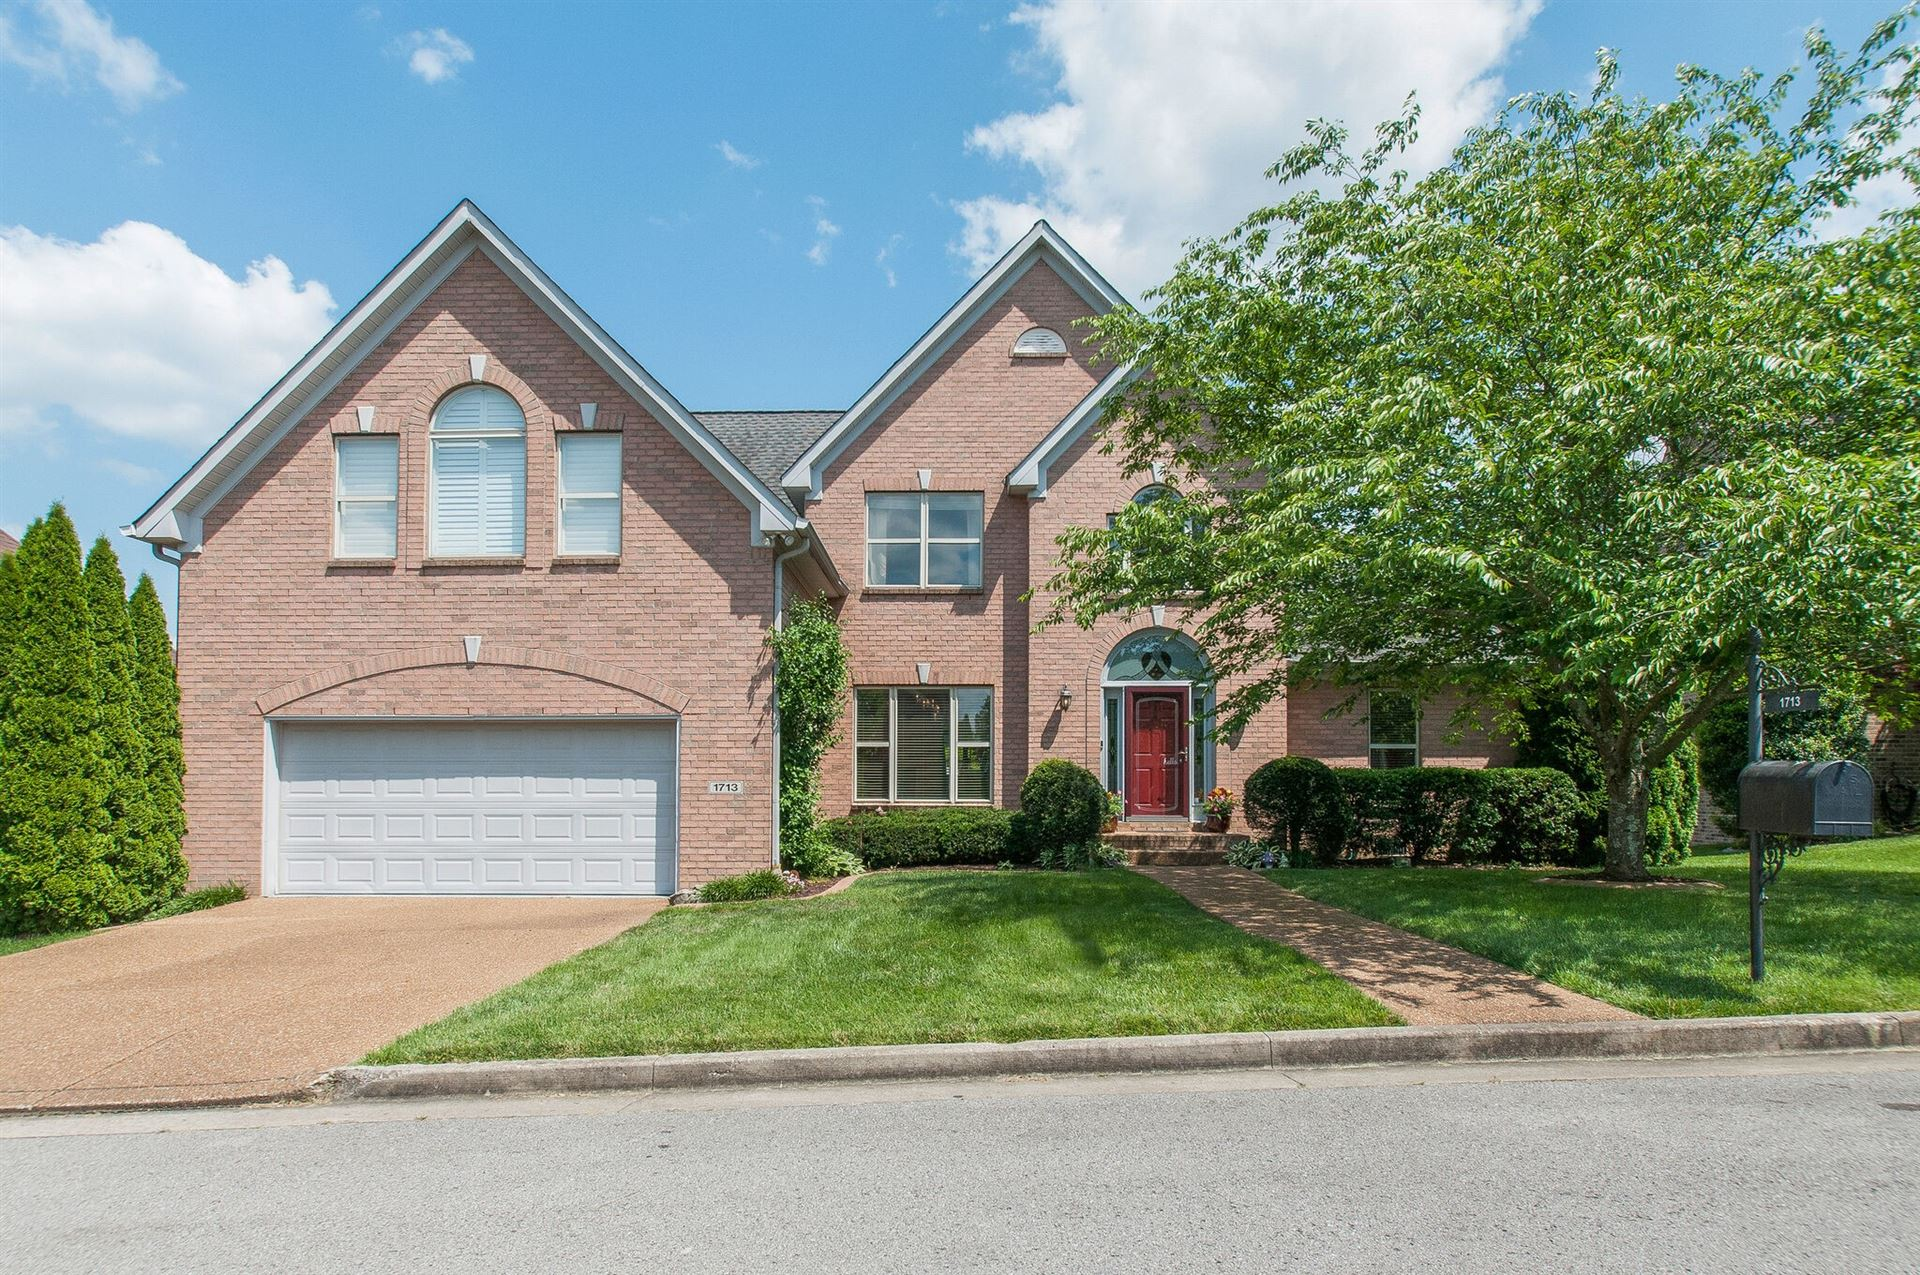 Photo of 1713 Yellow Wood Ct, Nashville, TN 37221 (MLS # 2156603)